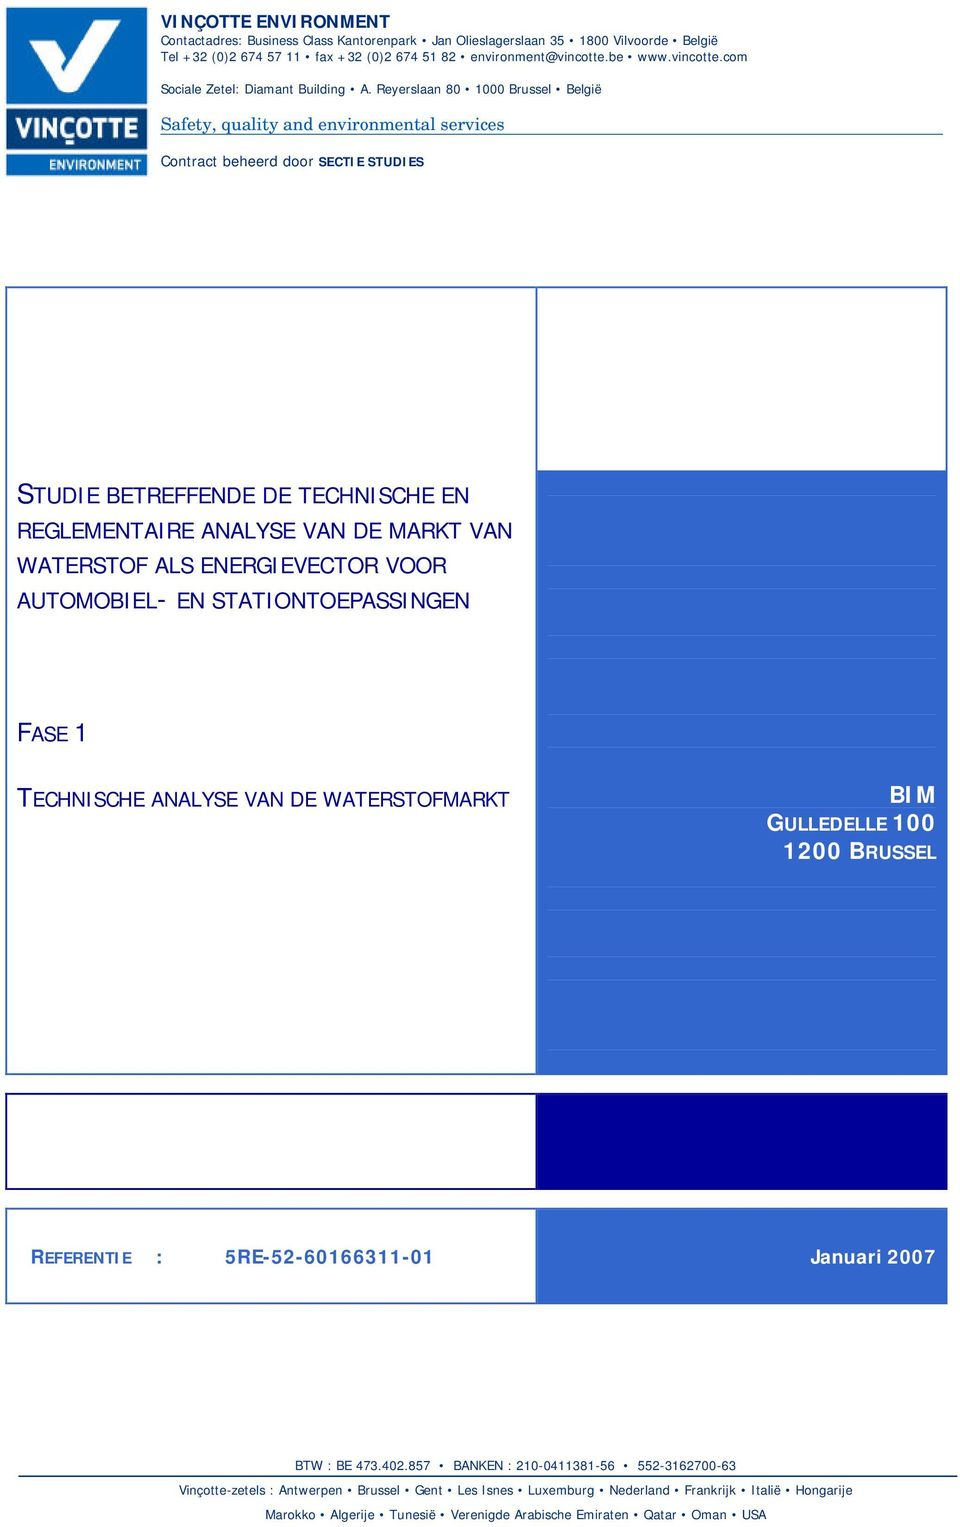 Reyerslaan 80 1000 Brussel België Safety, quality and environmental services Contract beheerd door SECTIE STUDIES STUDIE BETREFFENDE DE TECHNISCHE EN REGLEMENTAIRE ANALYSE VAN DE MARKT VAN WATERSTOF